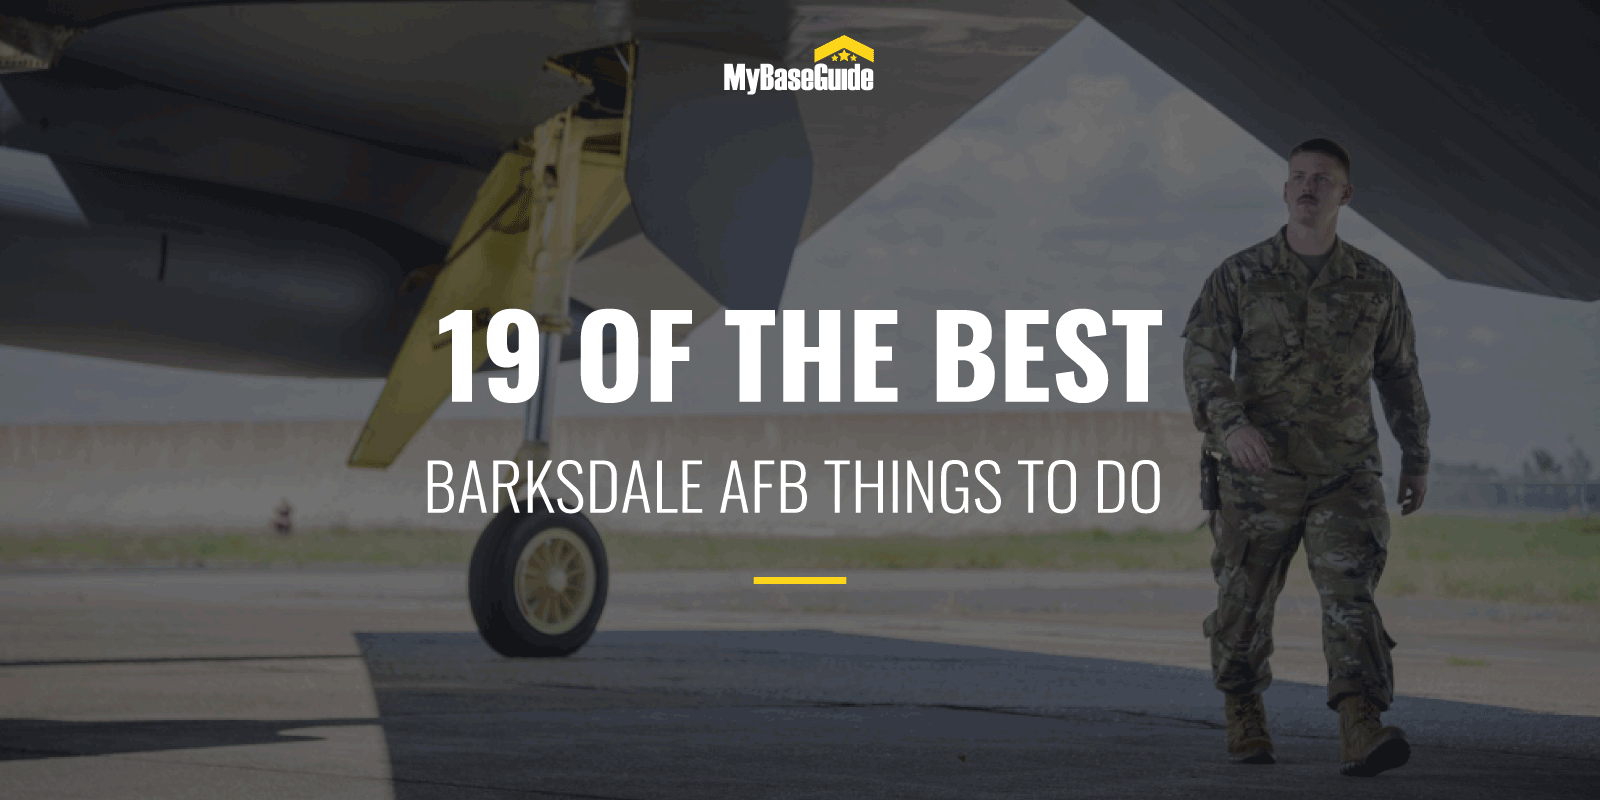 19 Of the Best Things to Do Near Barksdale AFB